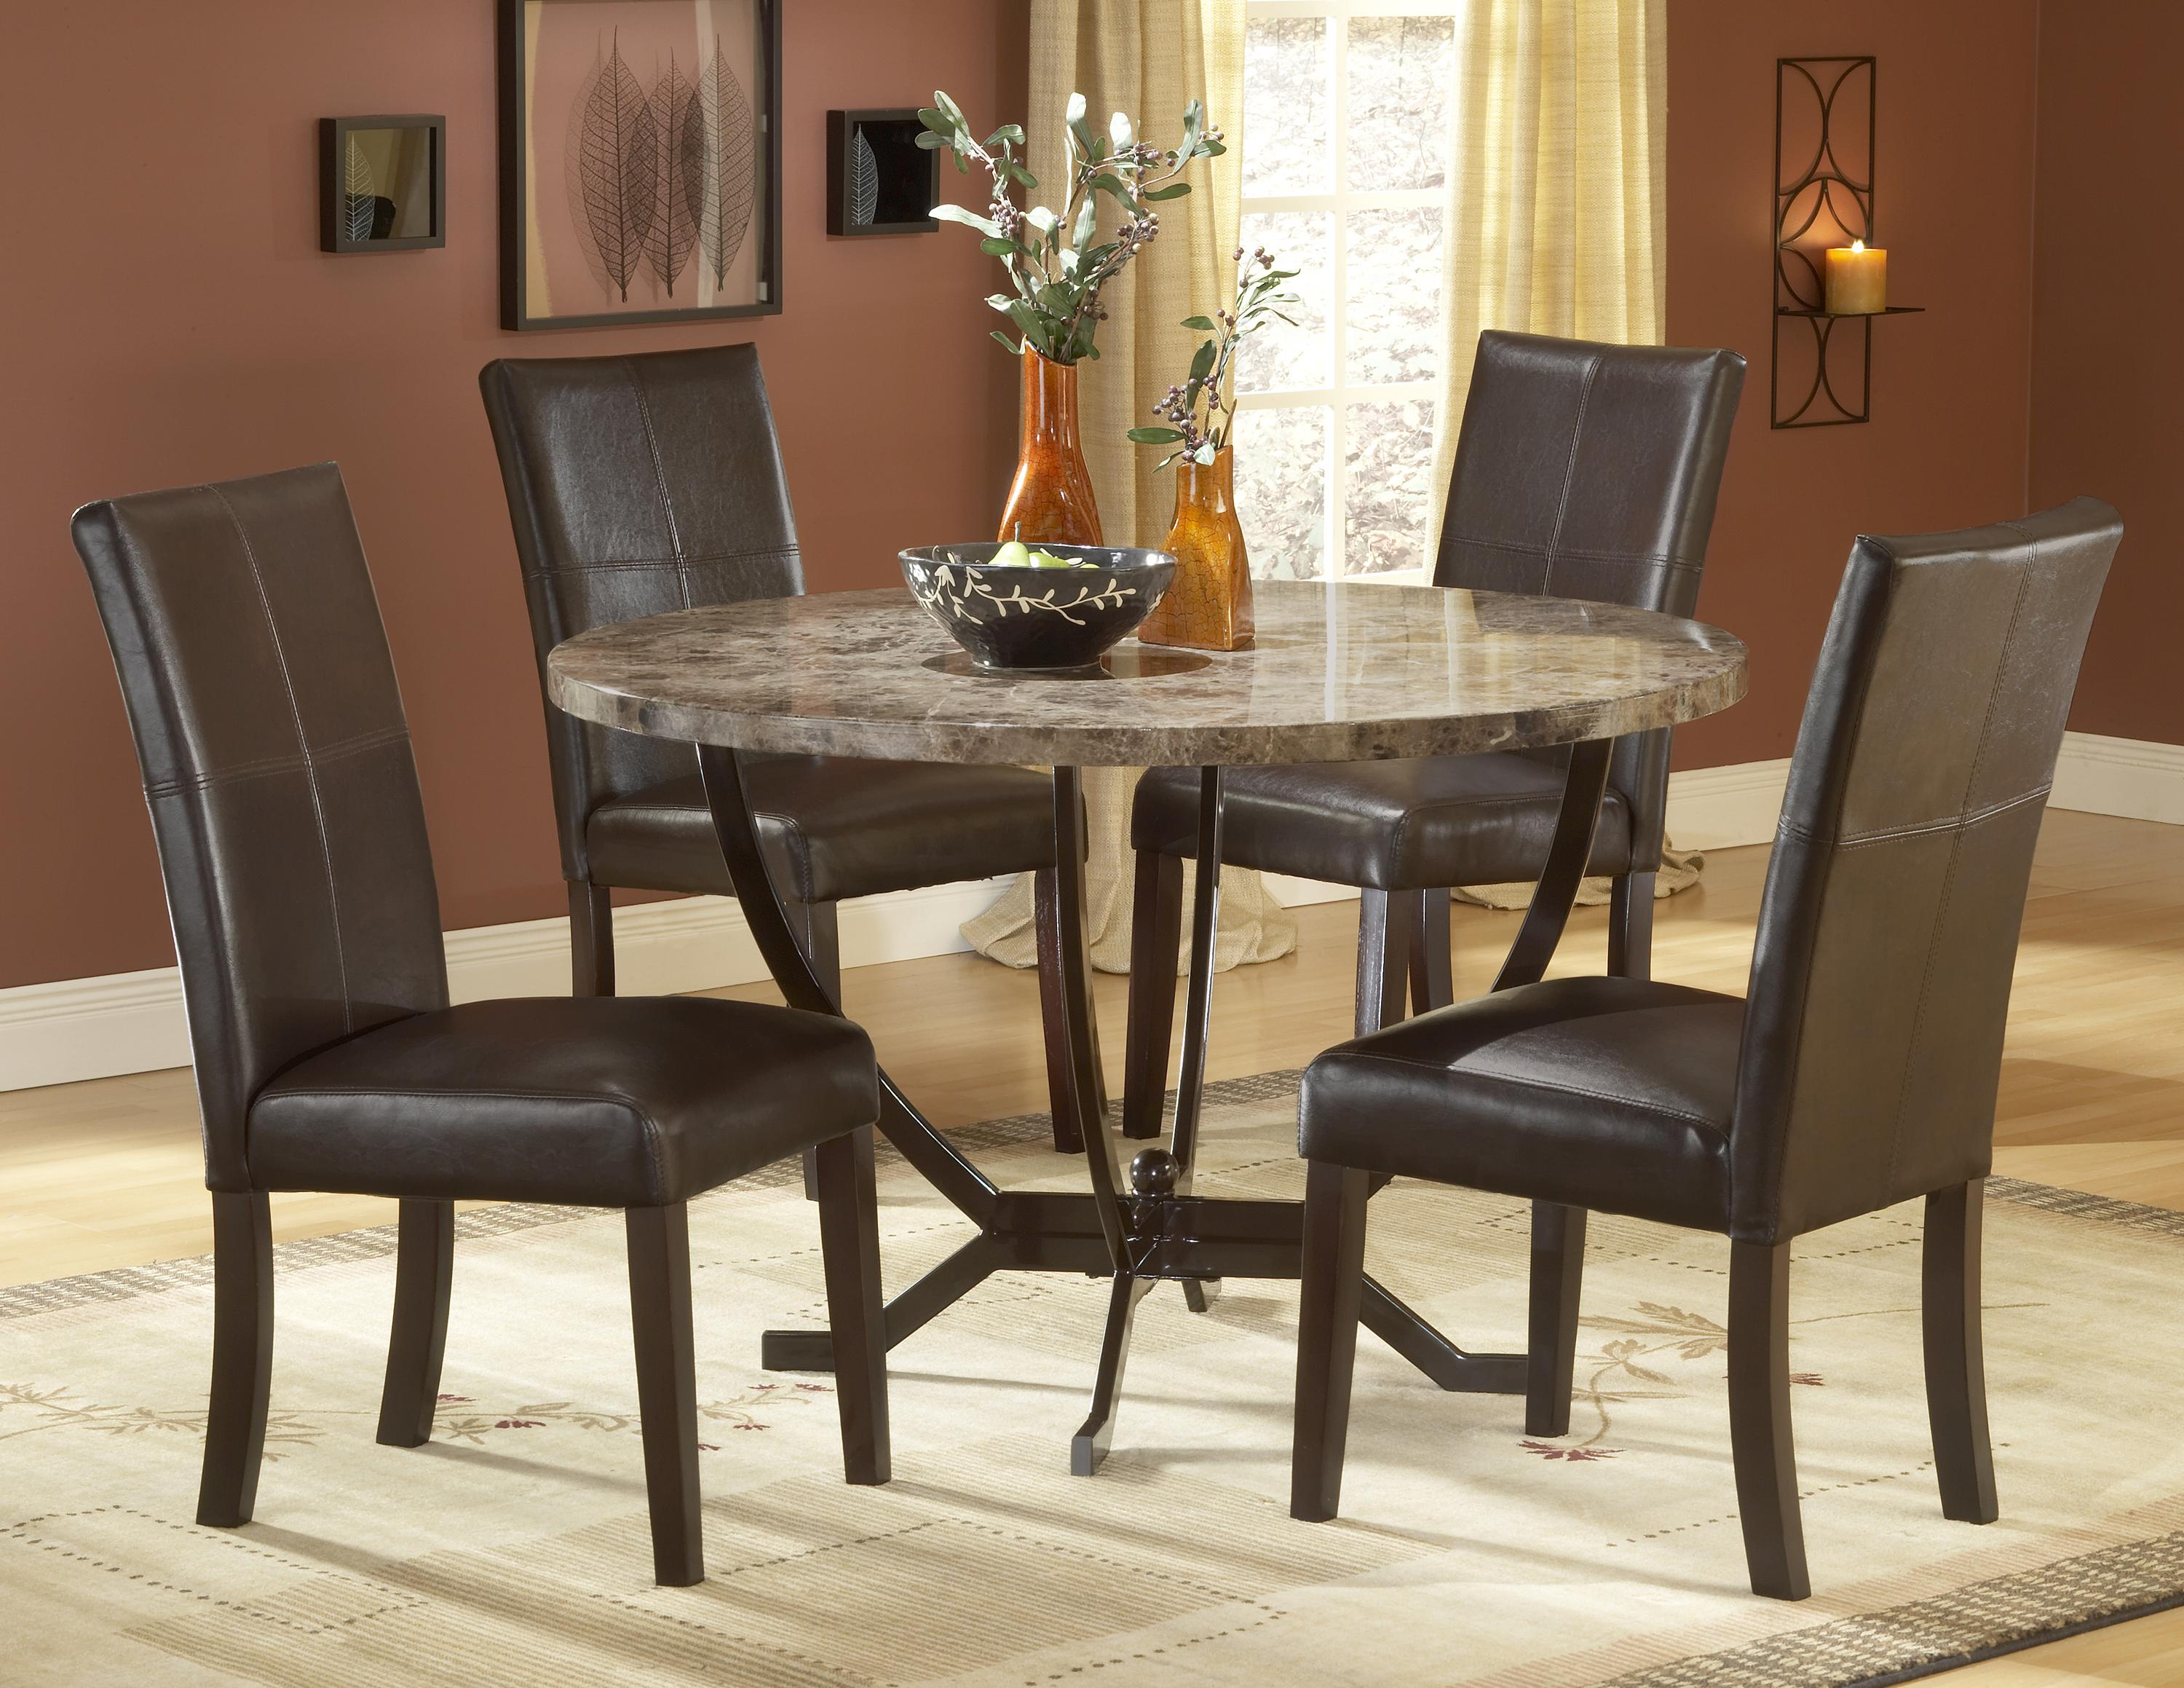 Chairs 4 Dinette Sets